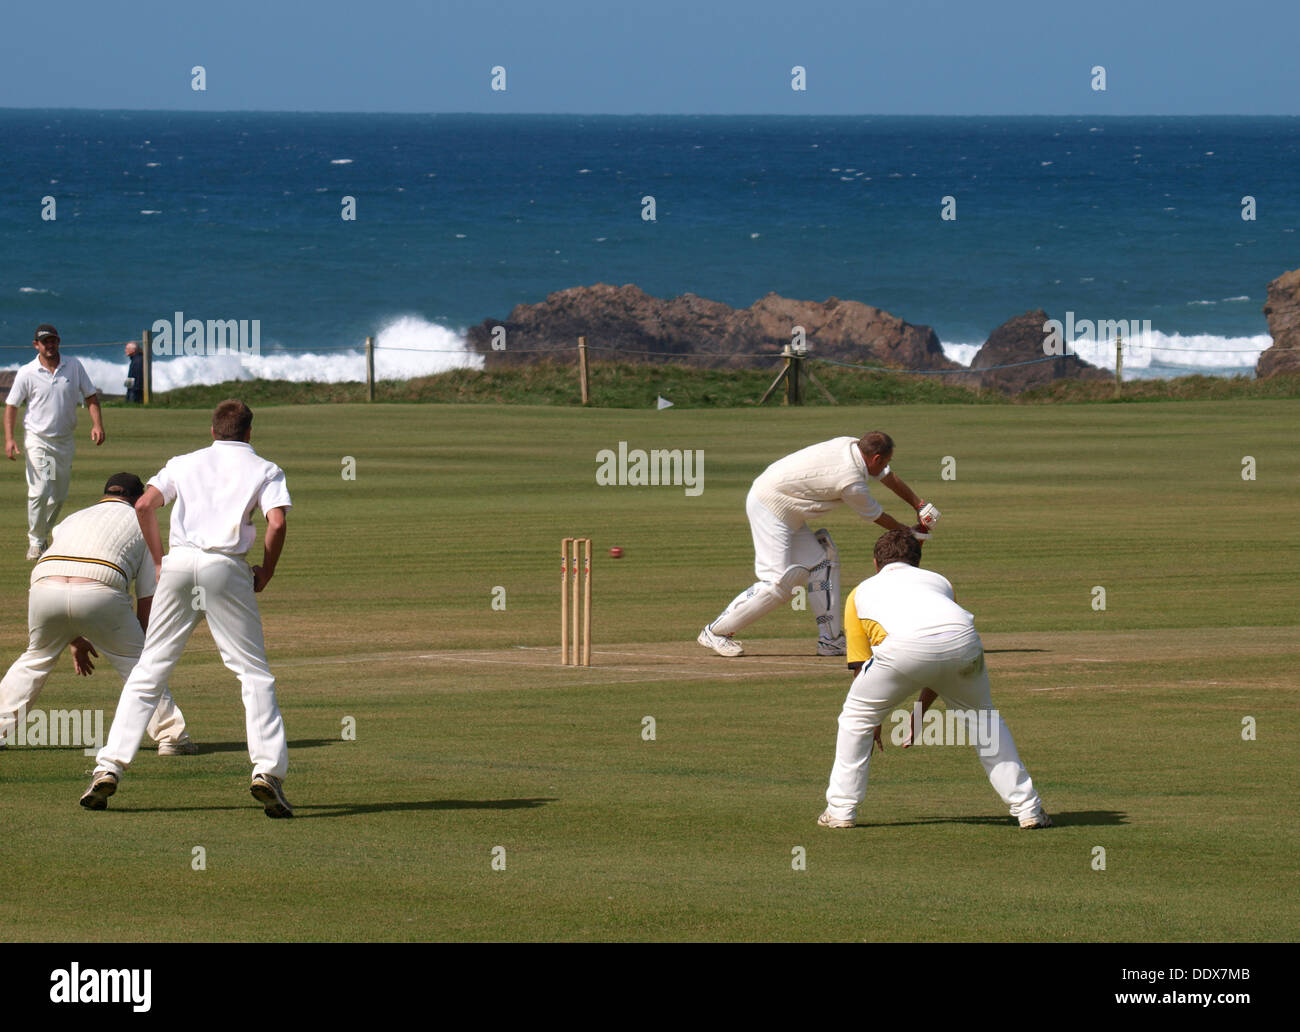 Batsman being bowled out, Amateur Cricket match, Bude, Cornwall, UK 2013 Stock Photo